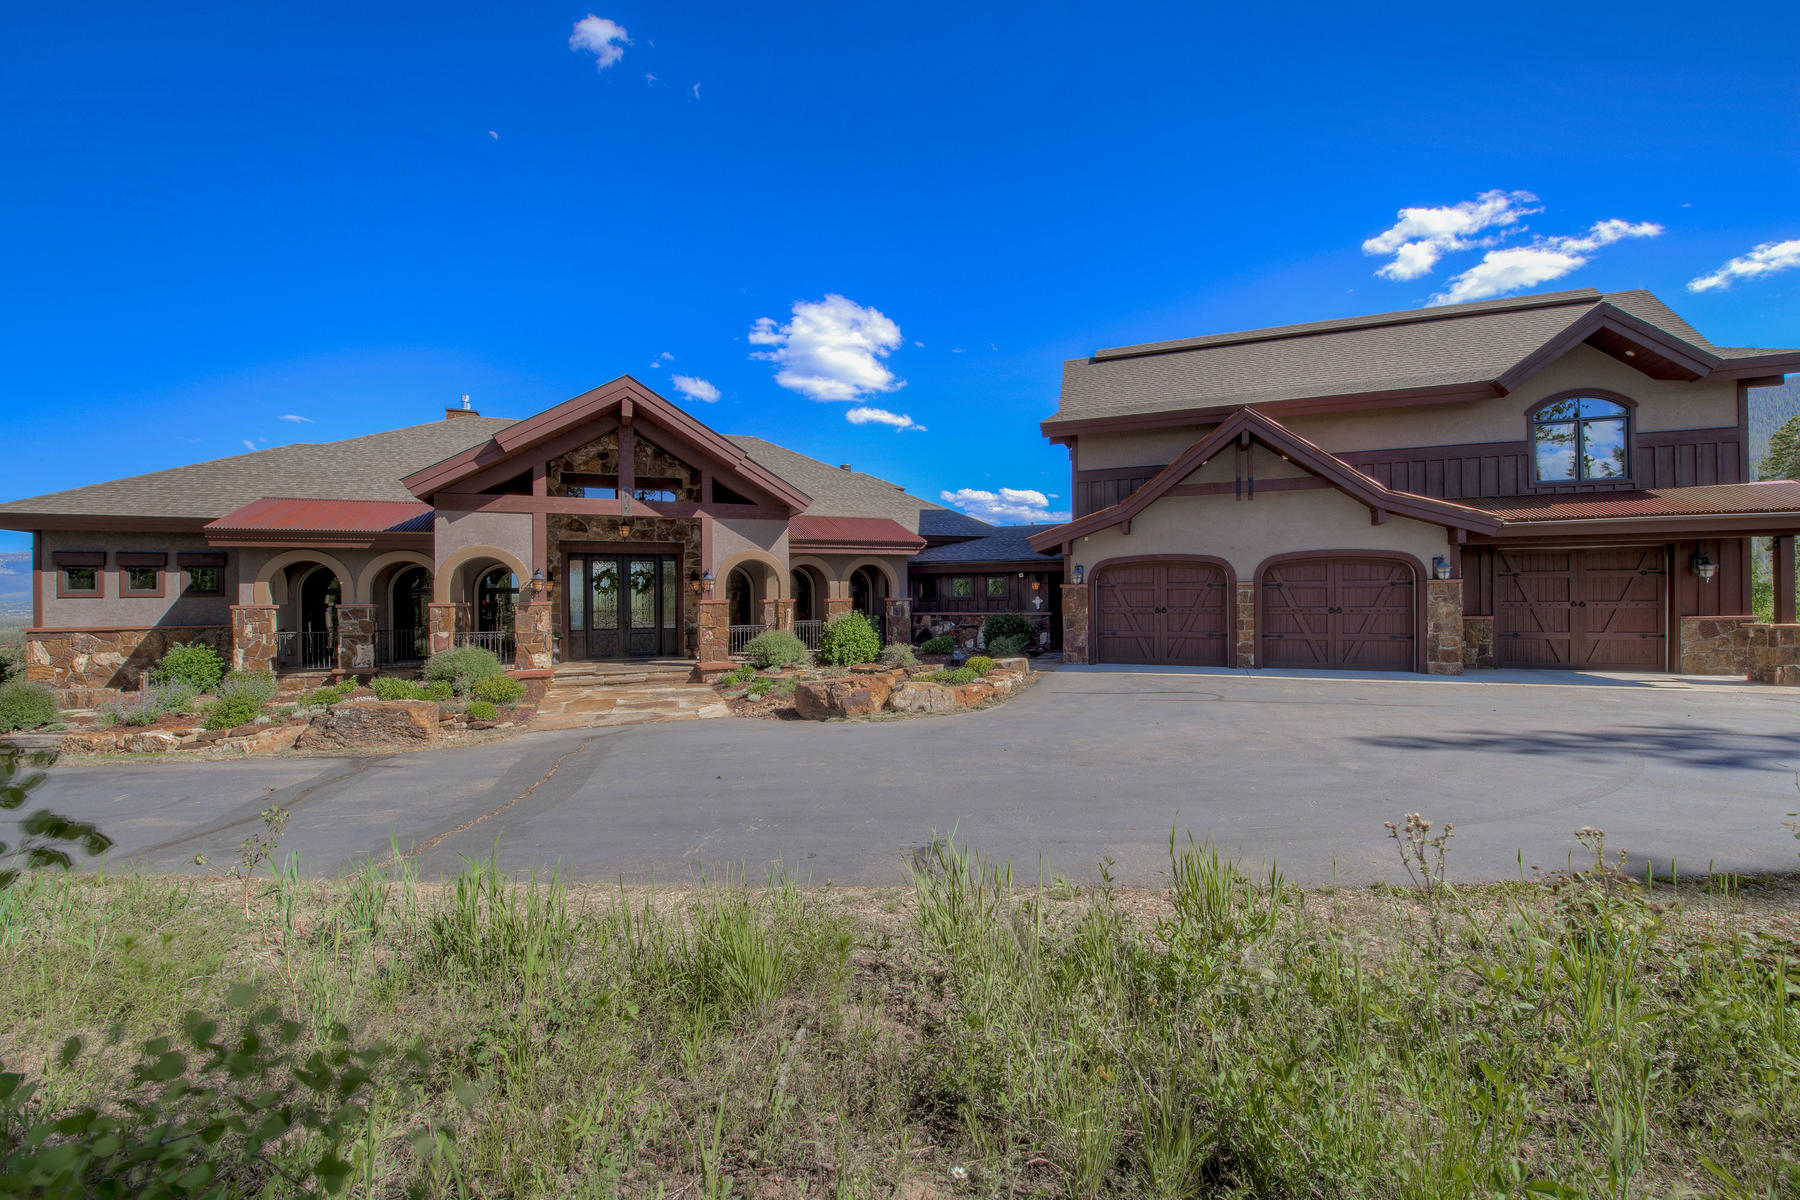 Single Family Homes for Sale at Mediterranean Mountain Home 147 GCR 51991 Tabernash, Colorado 80478 United States